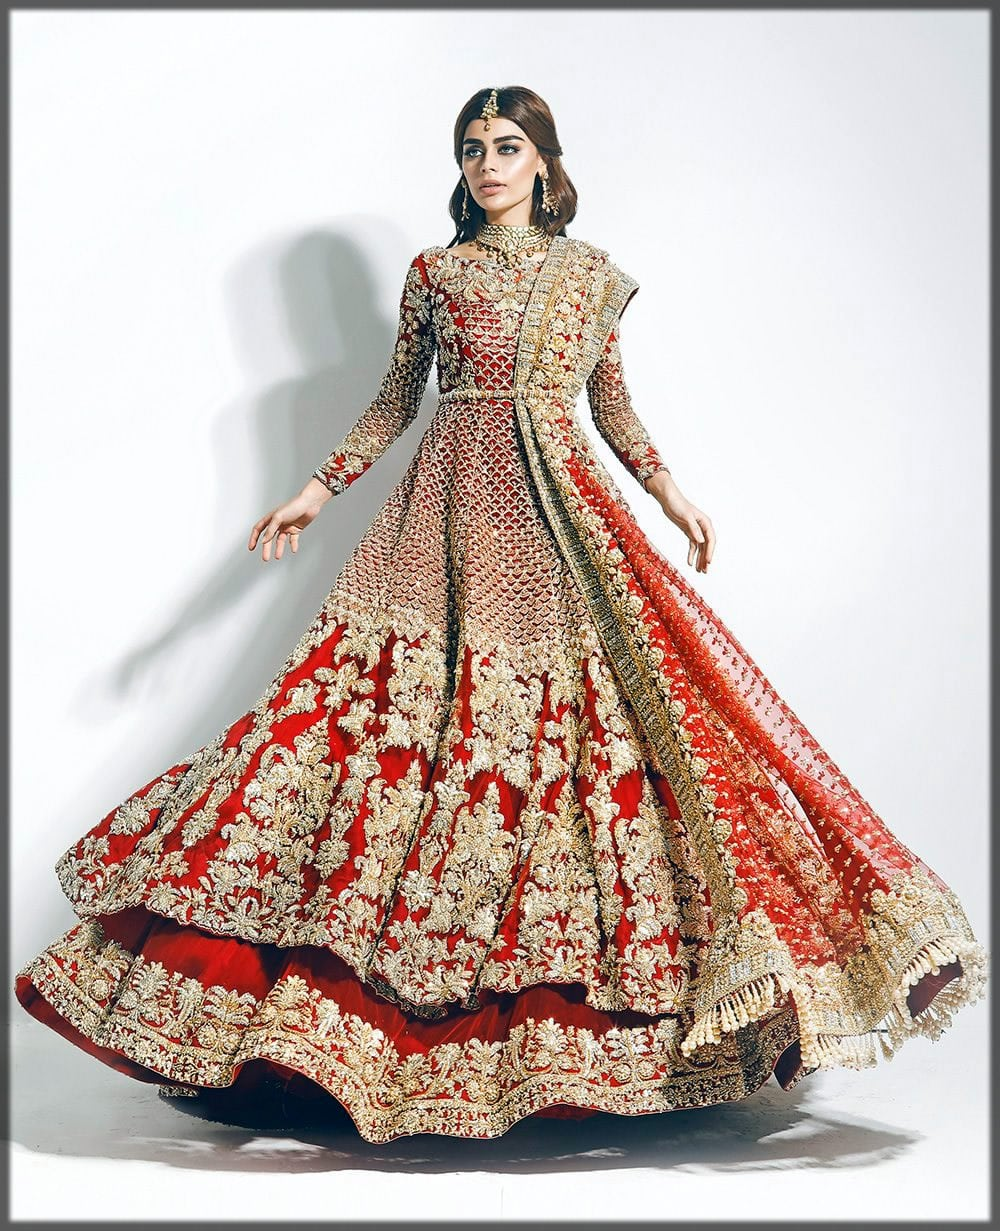 Barat day Pakistani wedding frocks